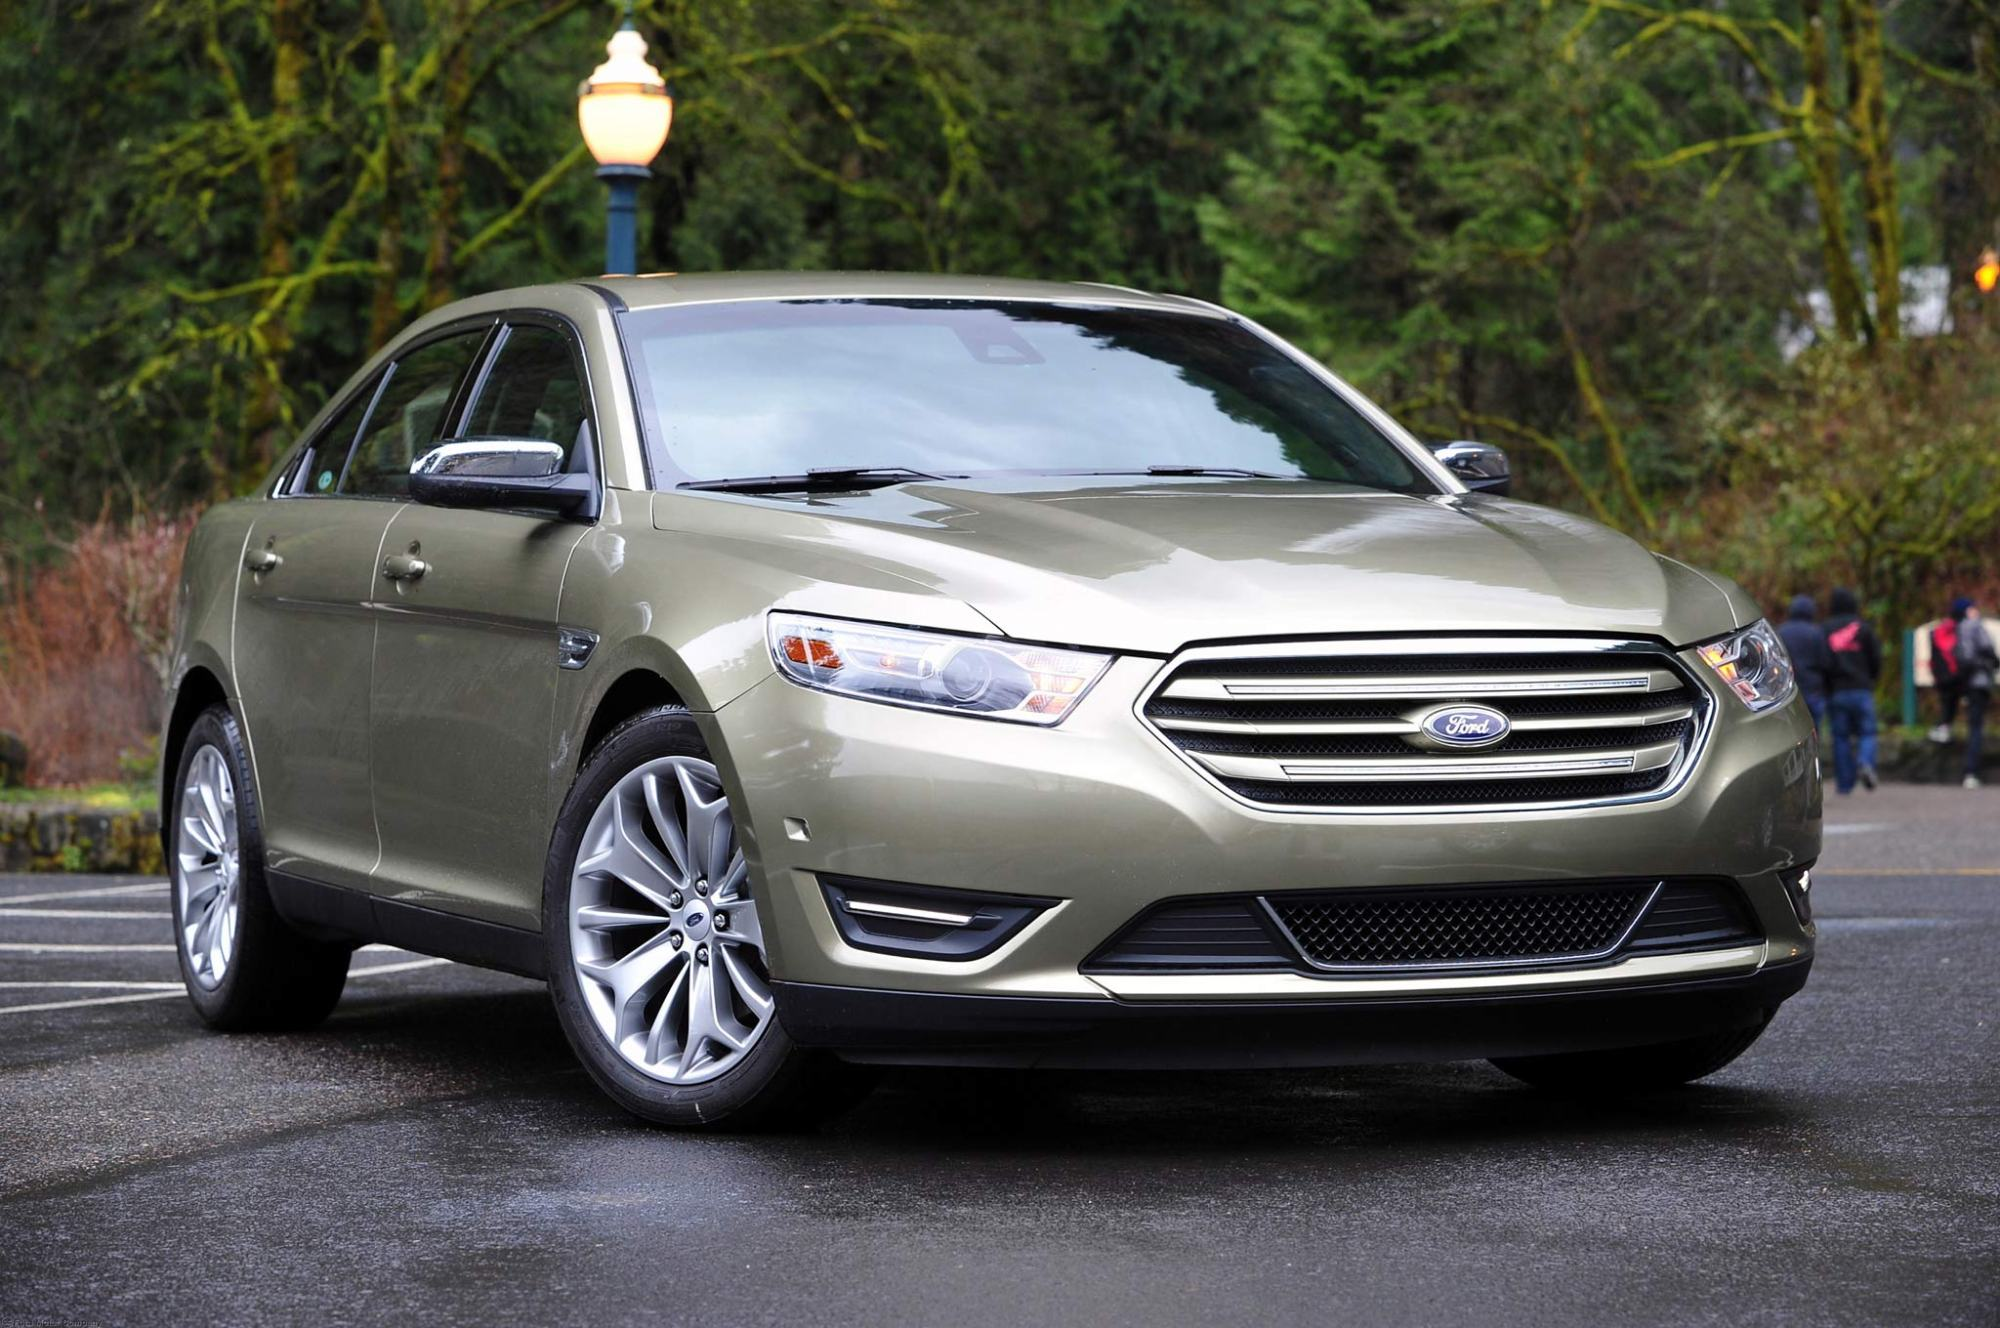 hight resolution of 2013 ford taurus 14 207